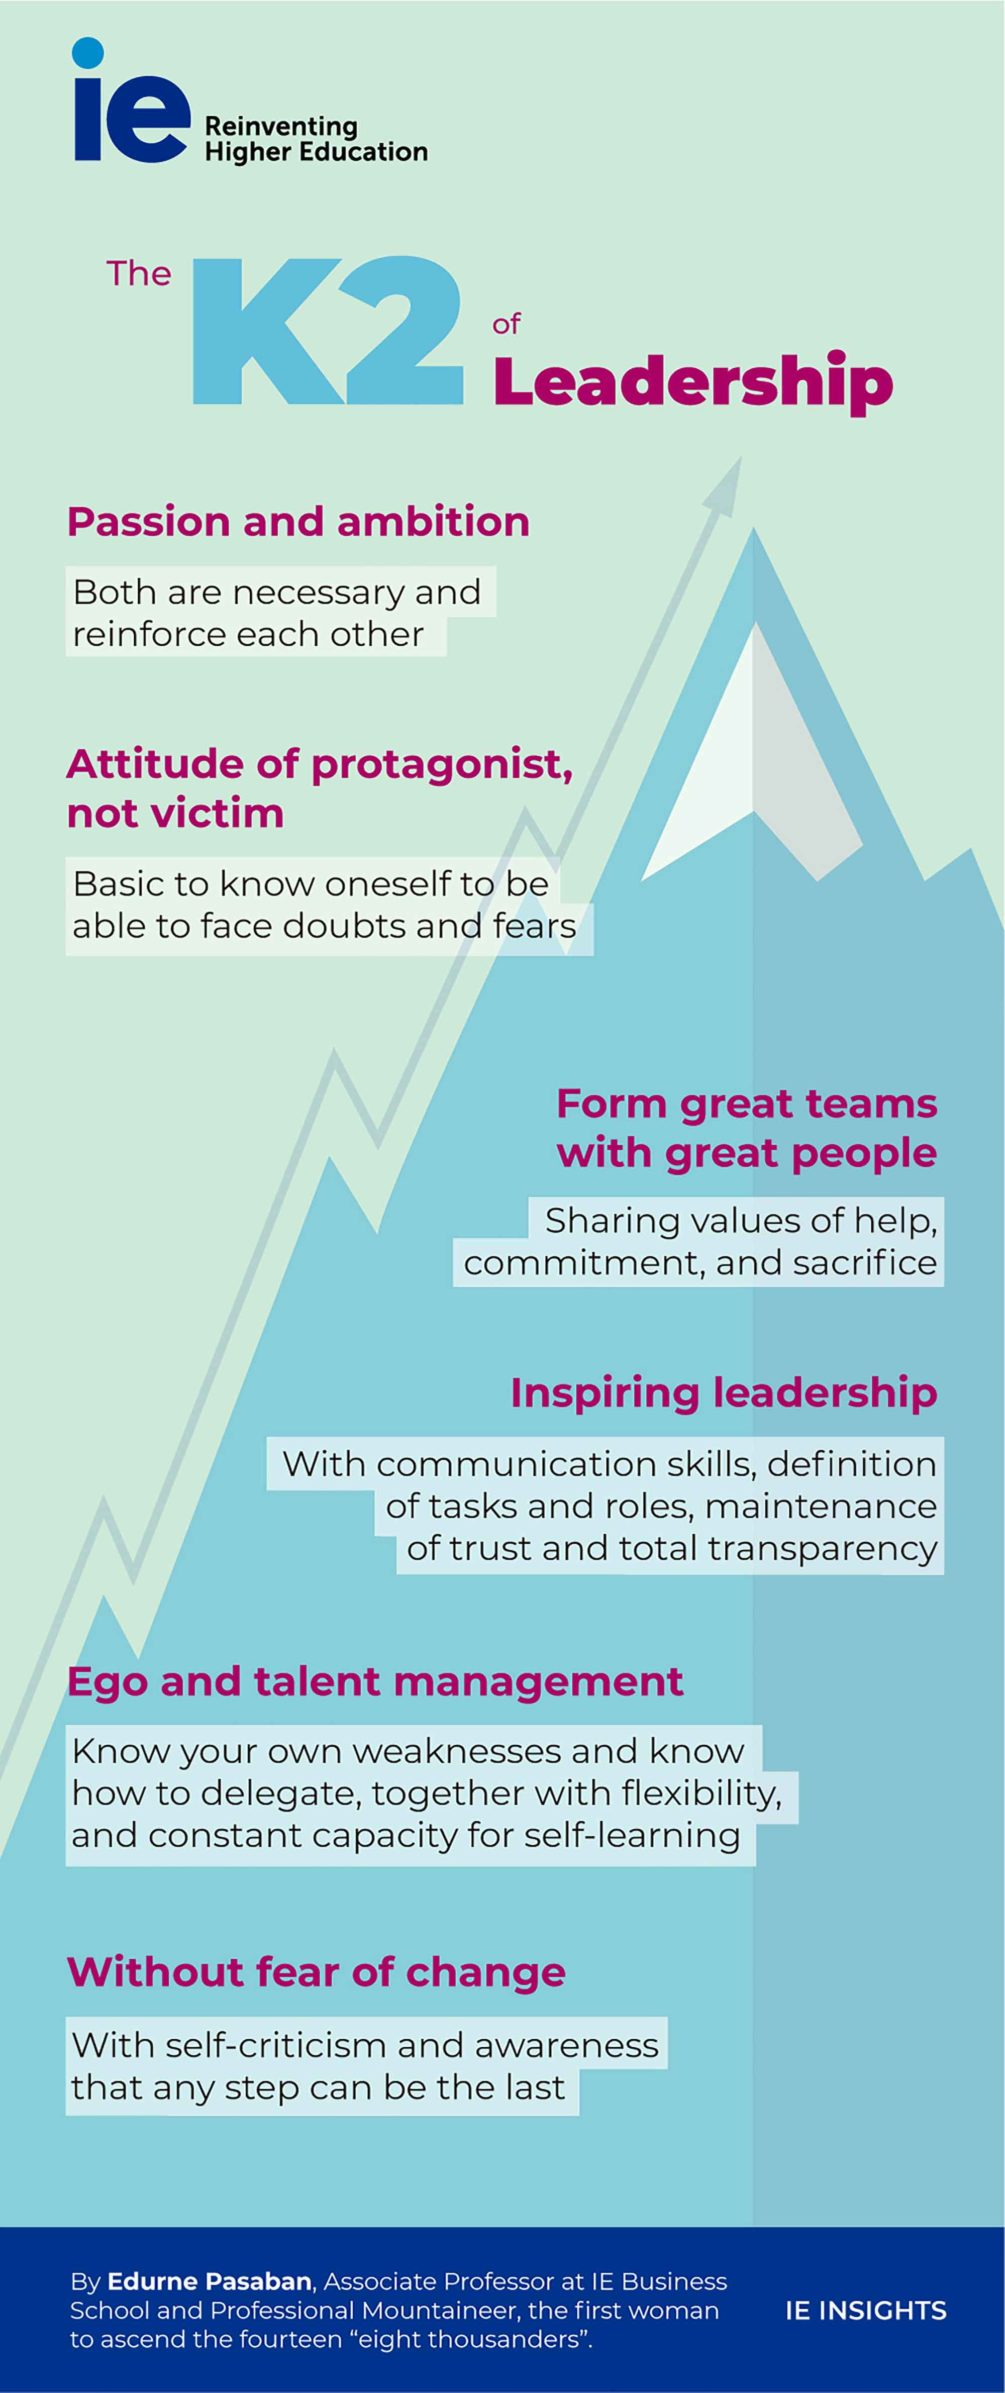 The K2 of Leadership